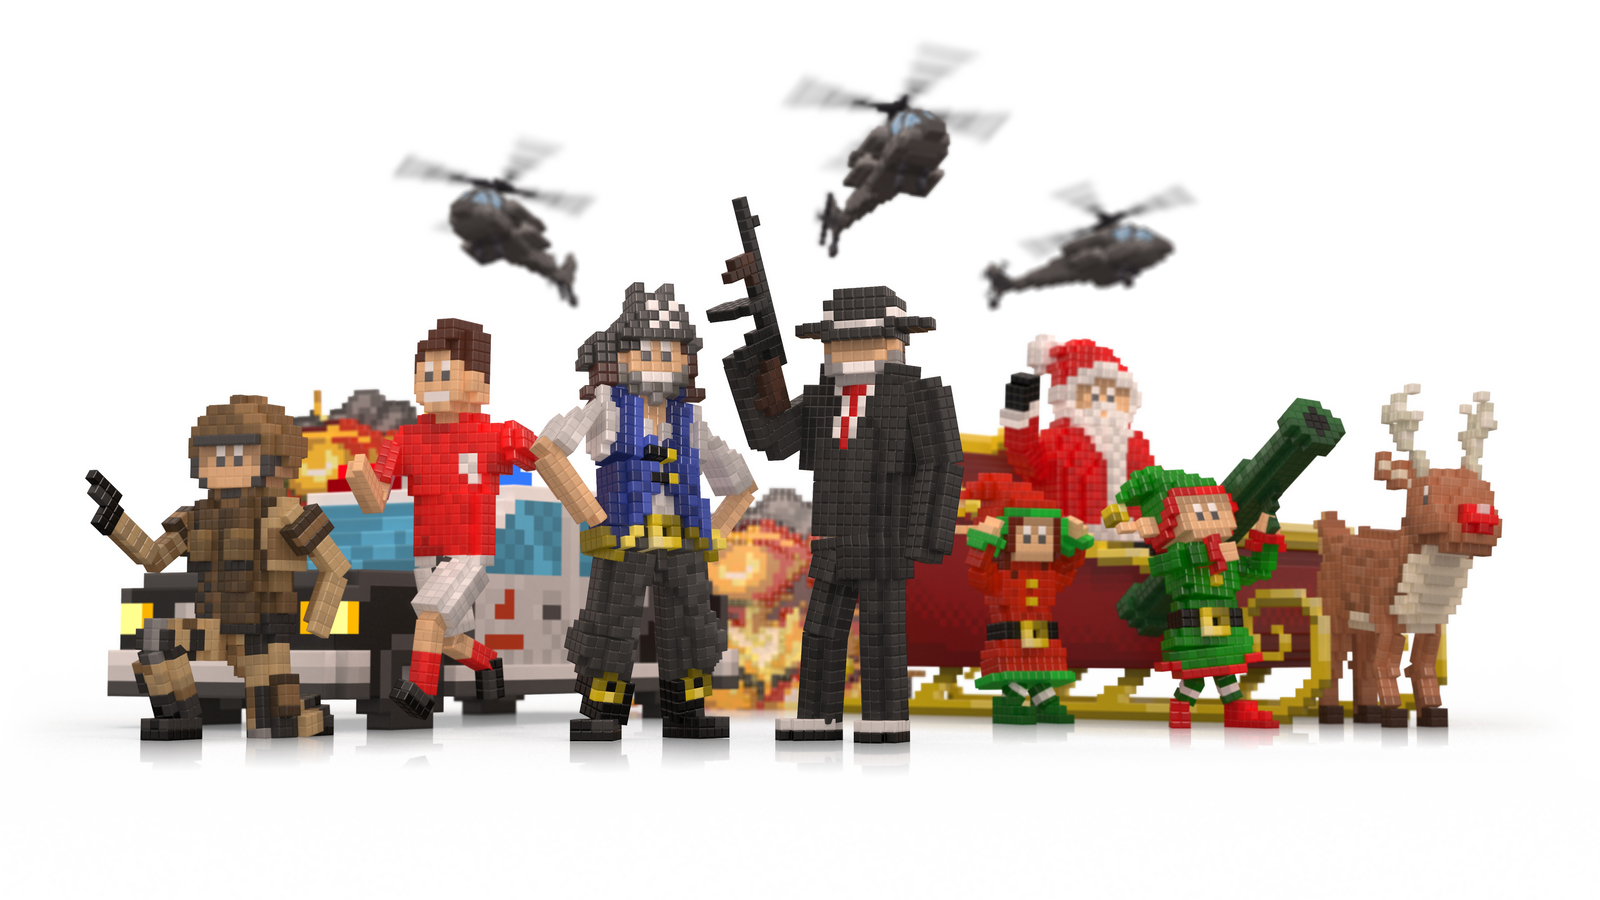 Render of all the GAME characters together